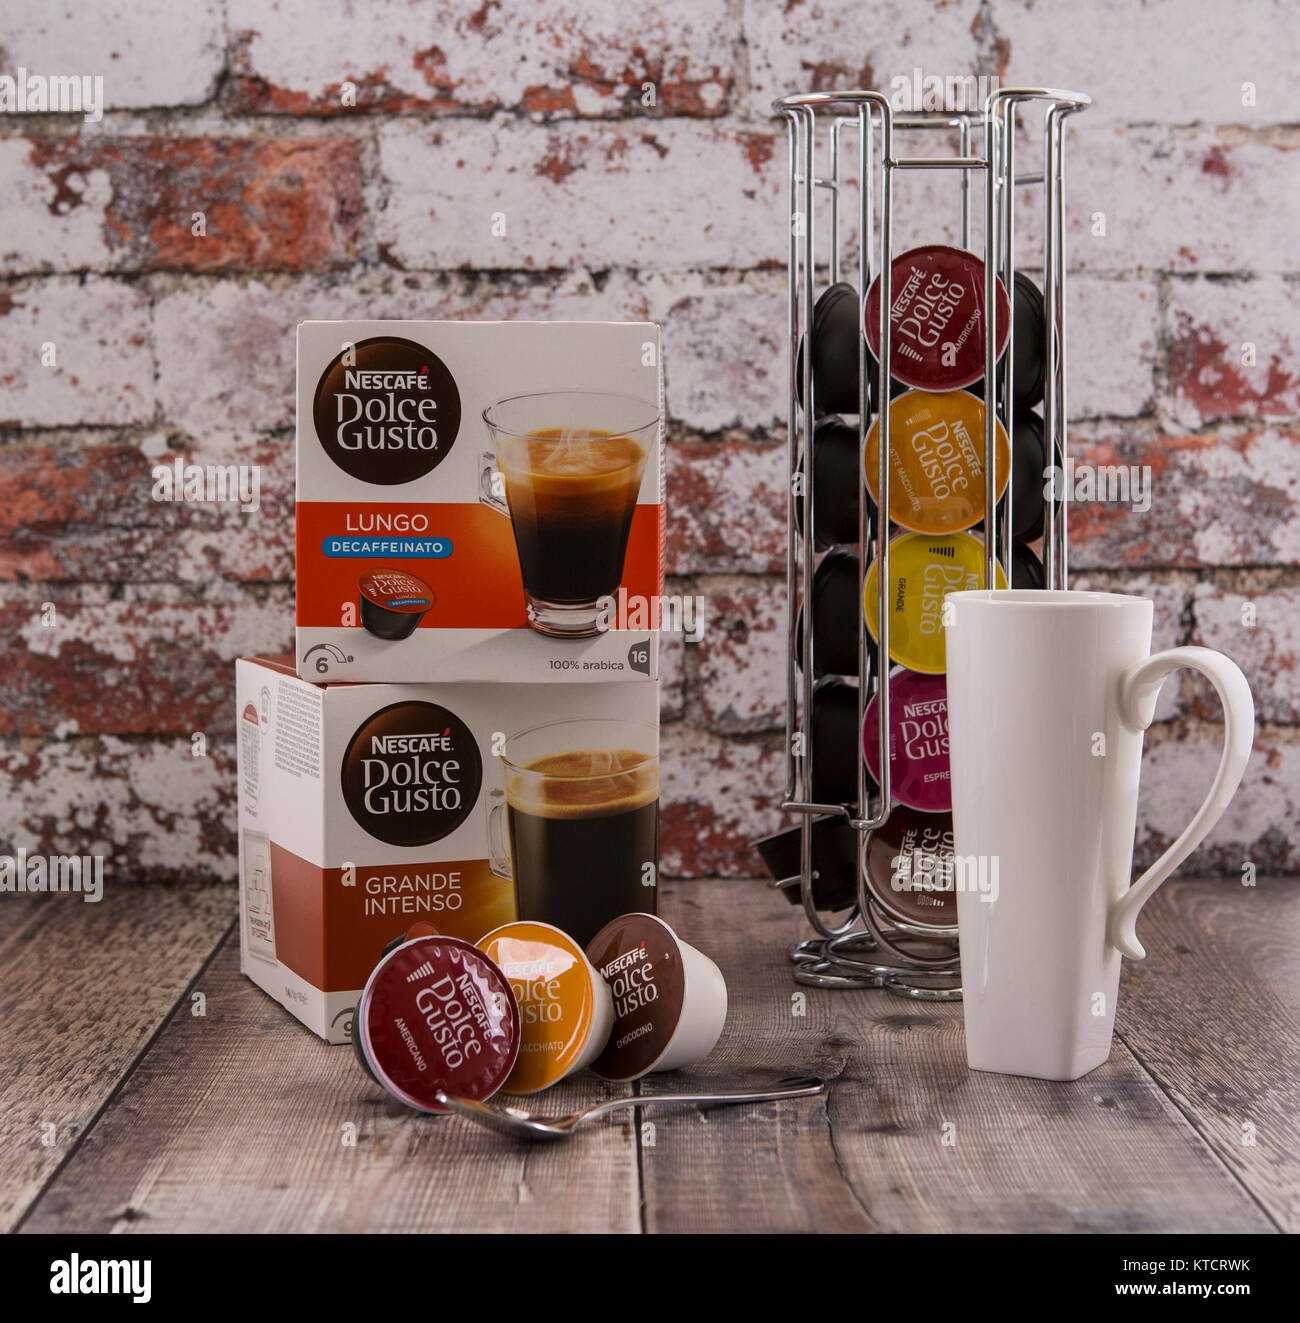 SWINDON, UK - DECEMBER 23, 2017: Nescafe Dolce Gusto Coffee Pod System in a rustic kitchen setting. - Stock Image